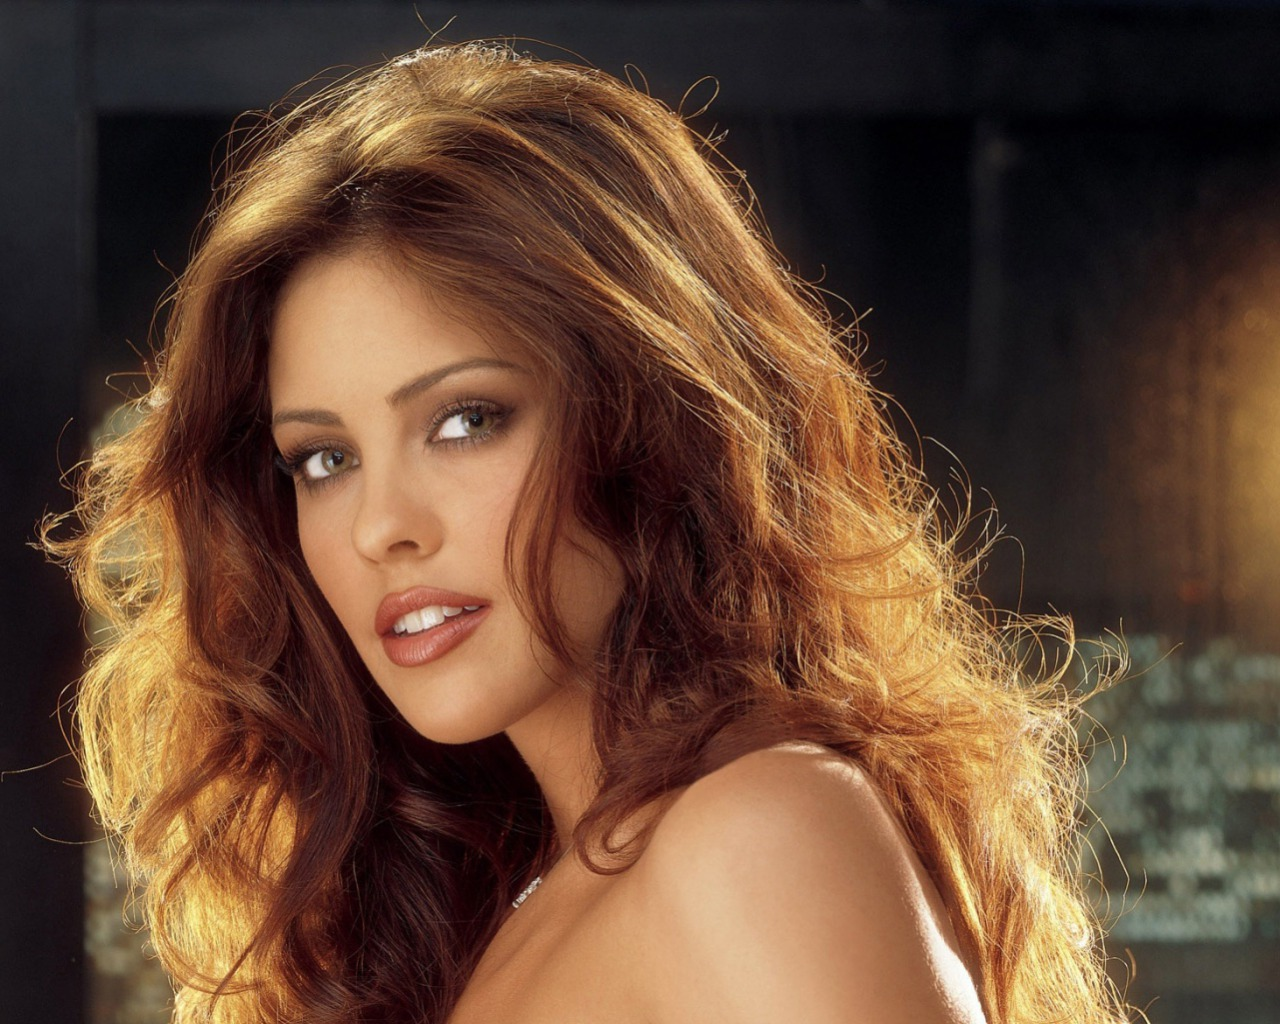 WallpapersWallpapers Celebrity HairStyle Wallpapers Celebrity HD 1280x1024